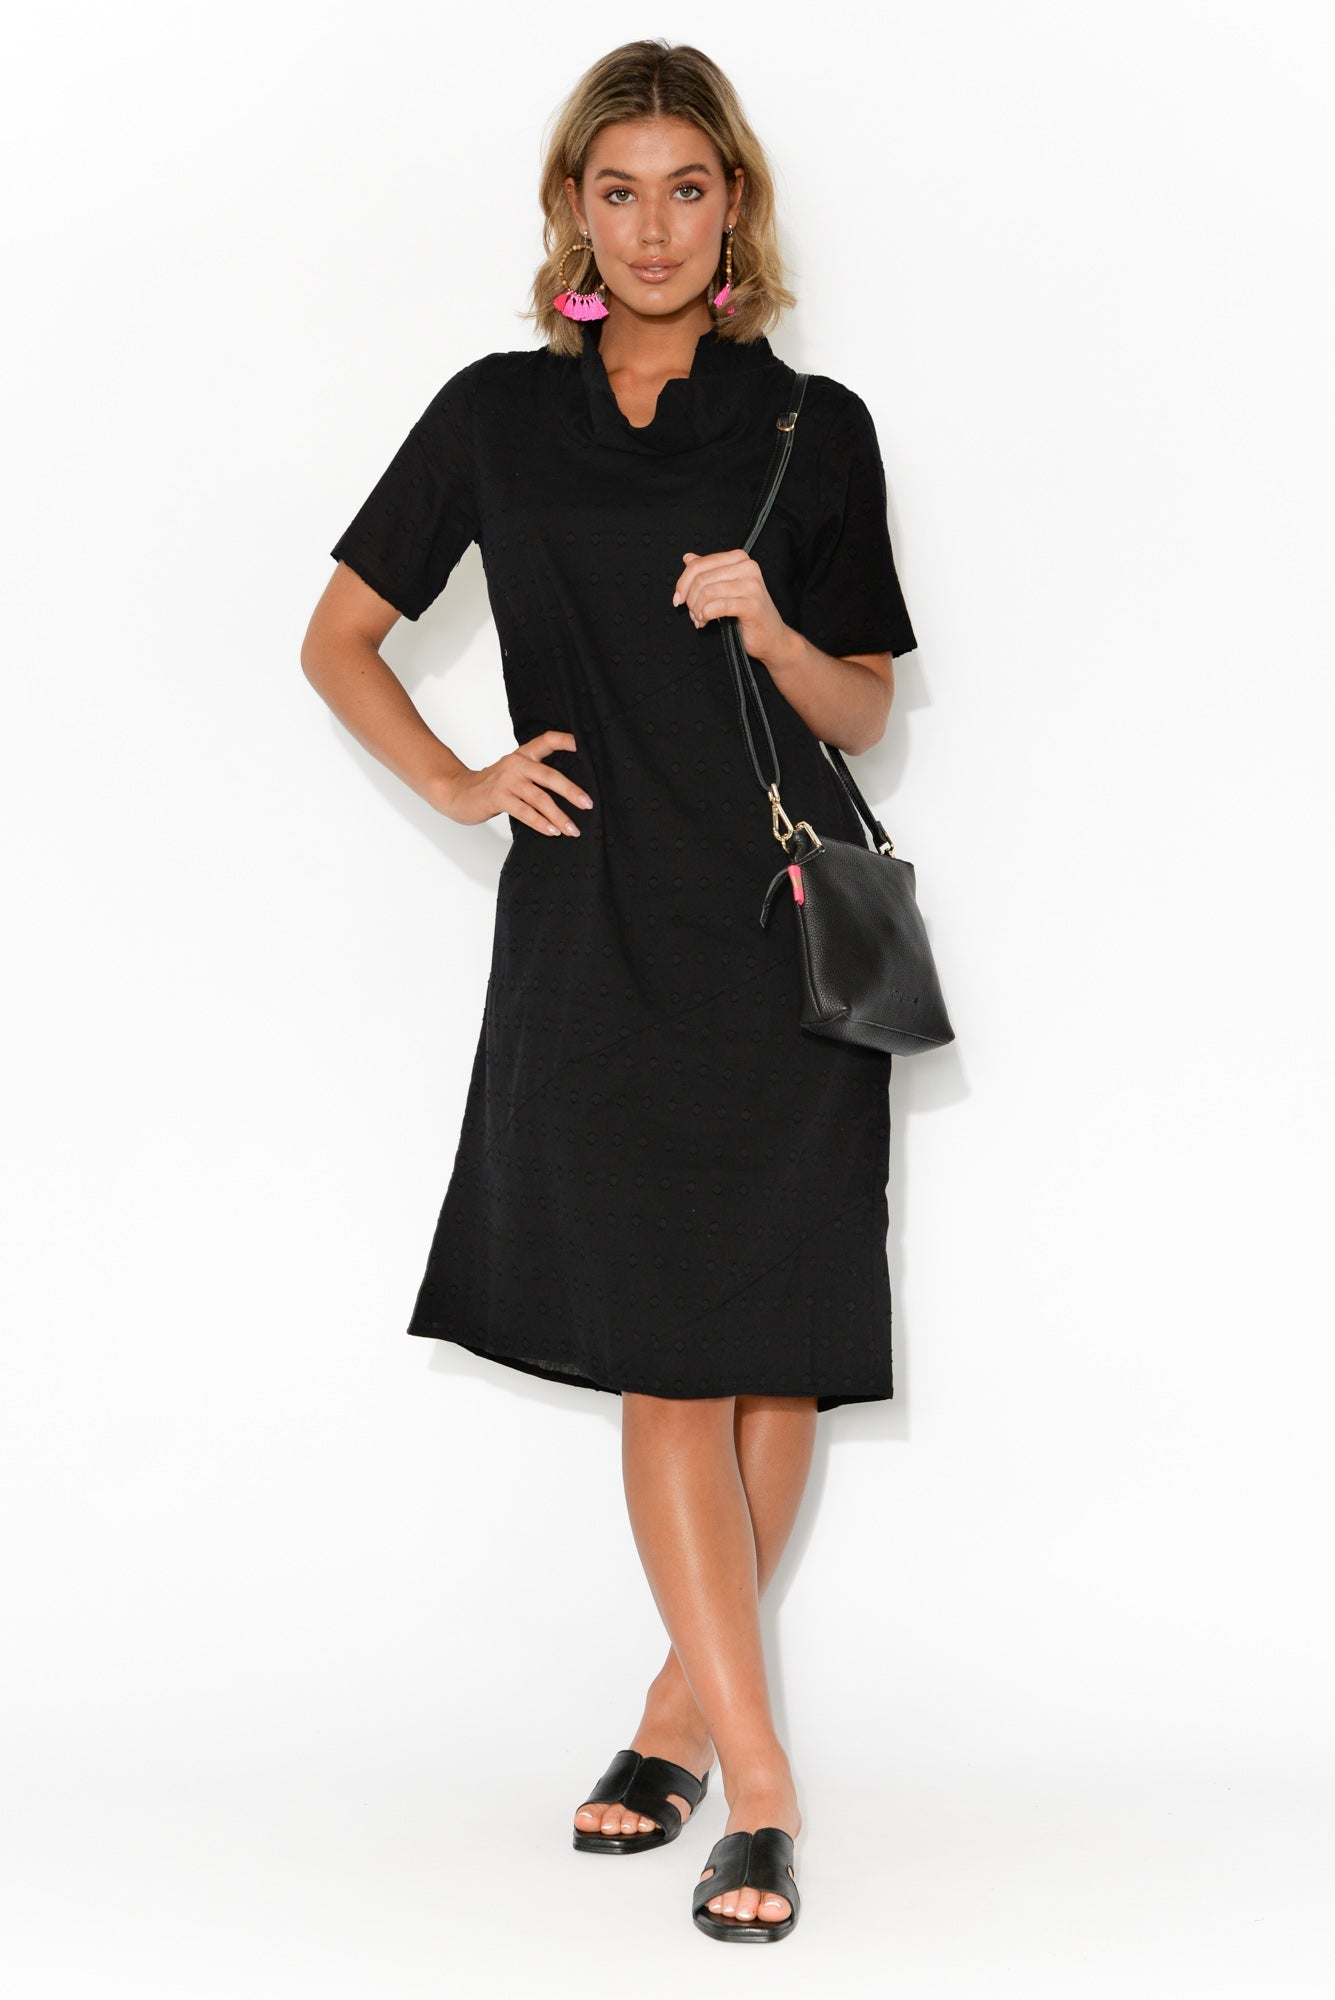 Atara Black Cotton Cowl Neck Dress